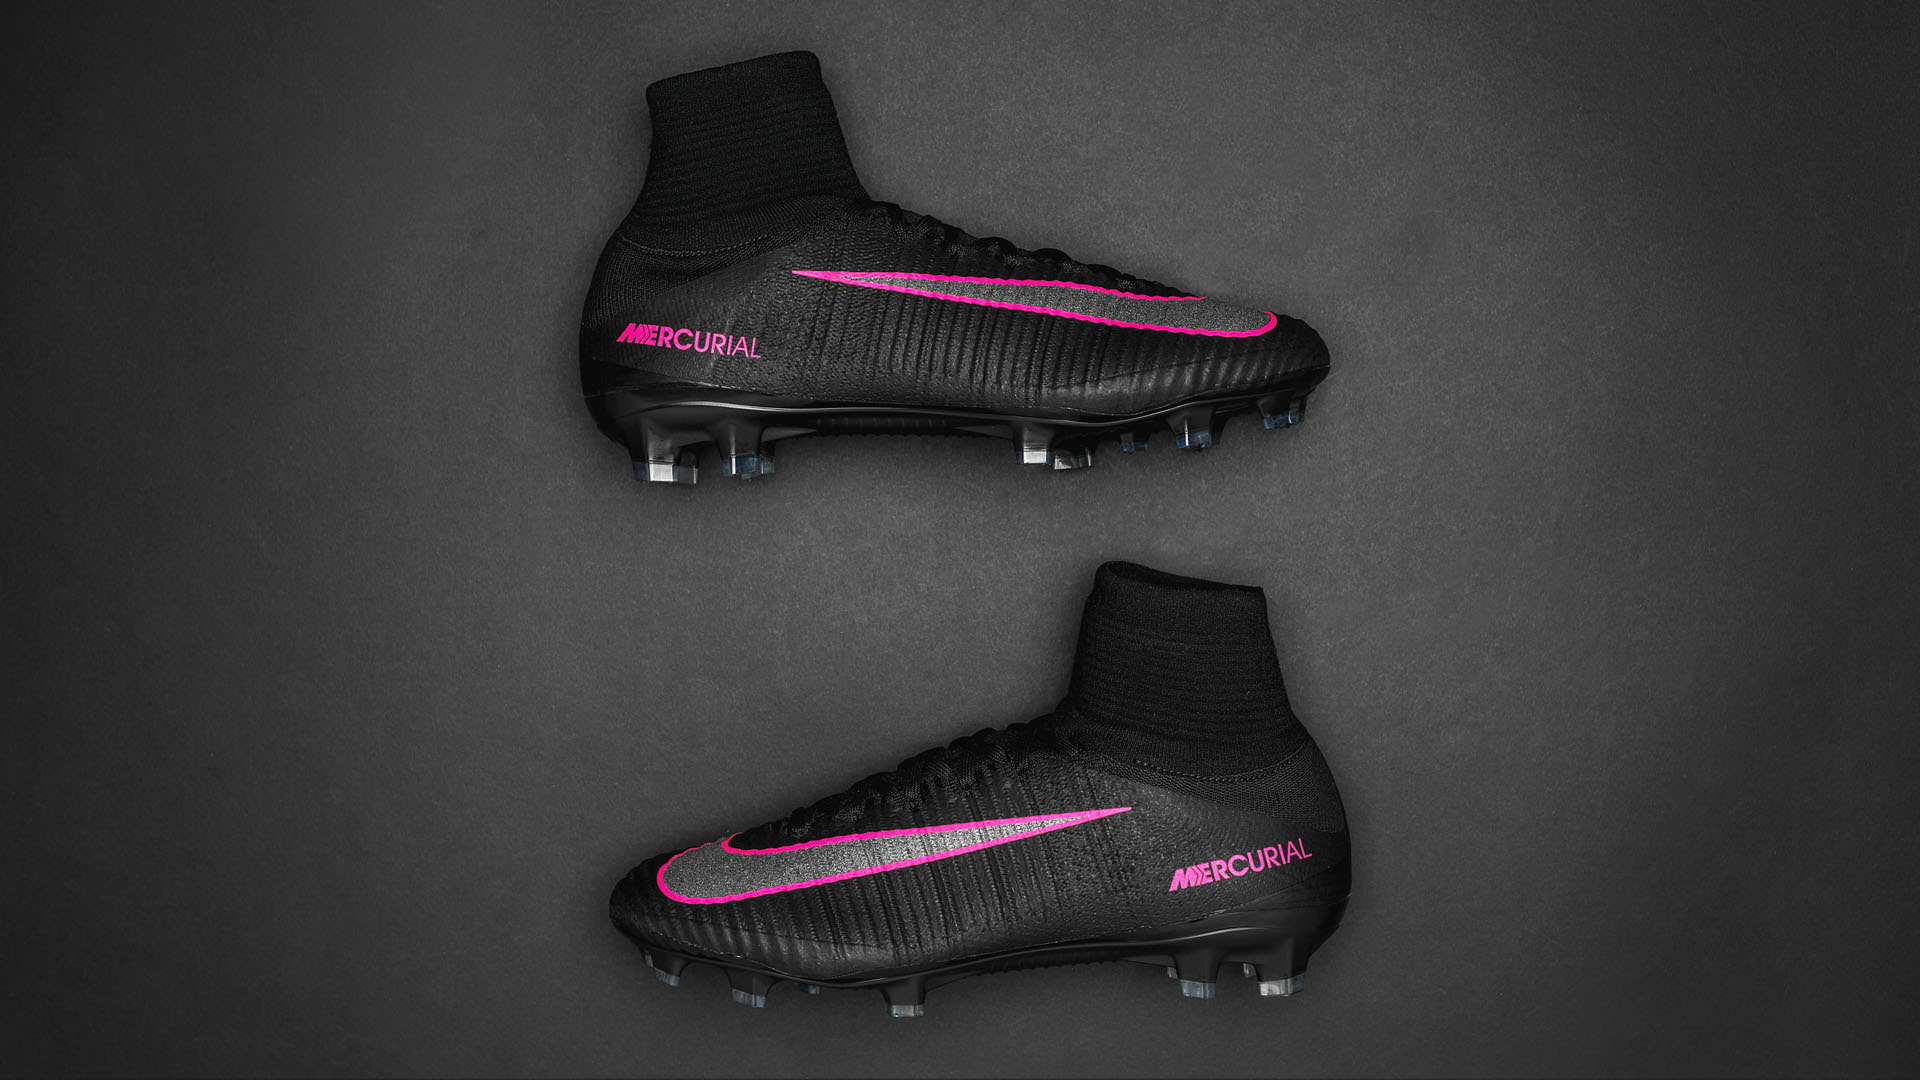 reputable site 07a77 b53a8 Nike Mercurial Superfly Pitch Dark Pack